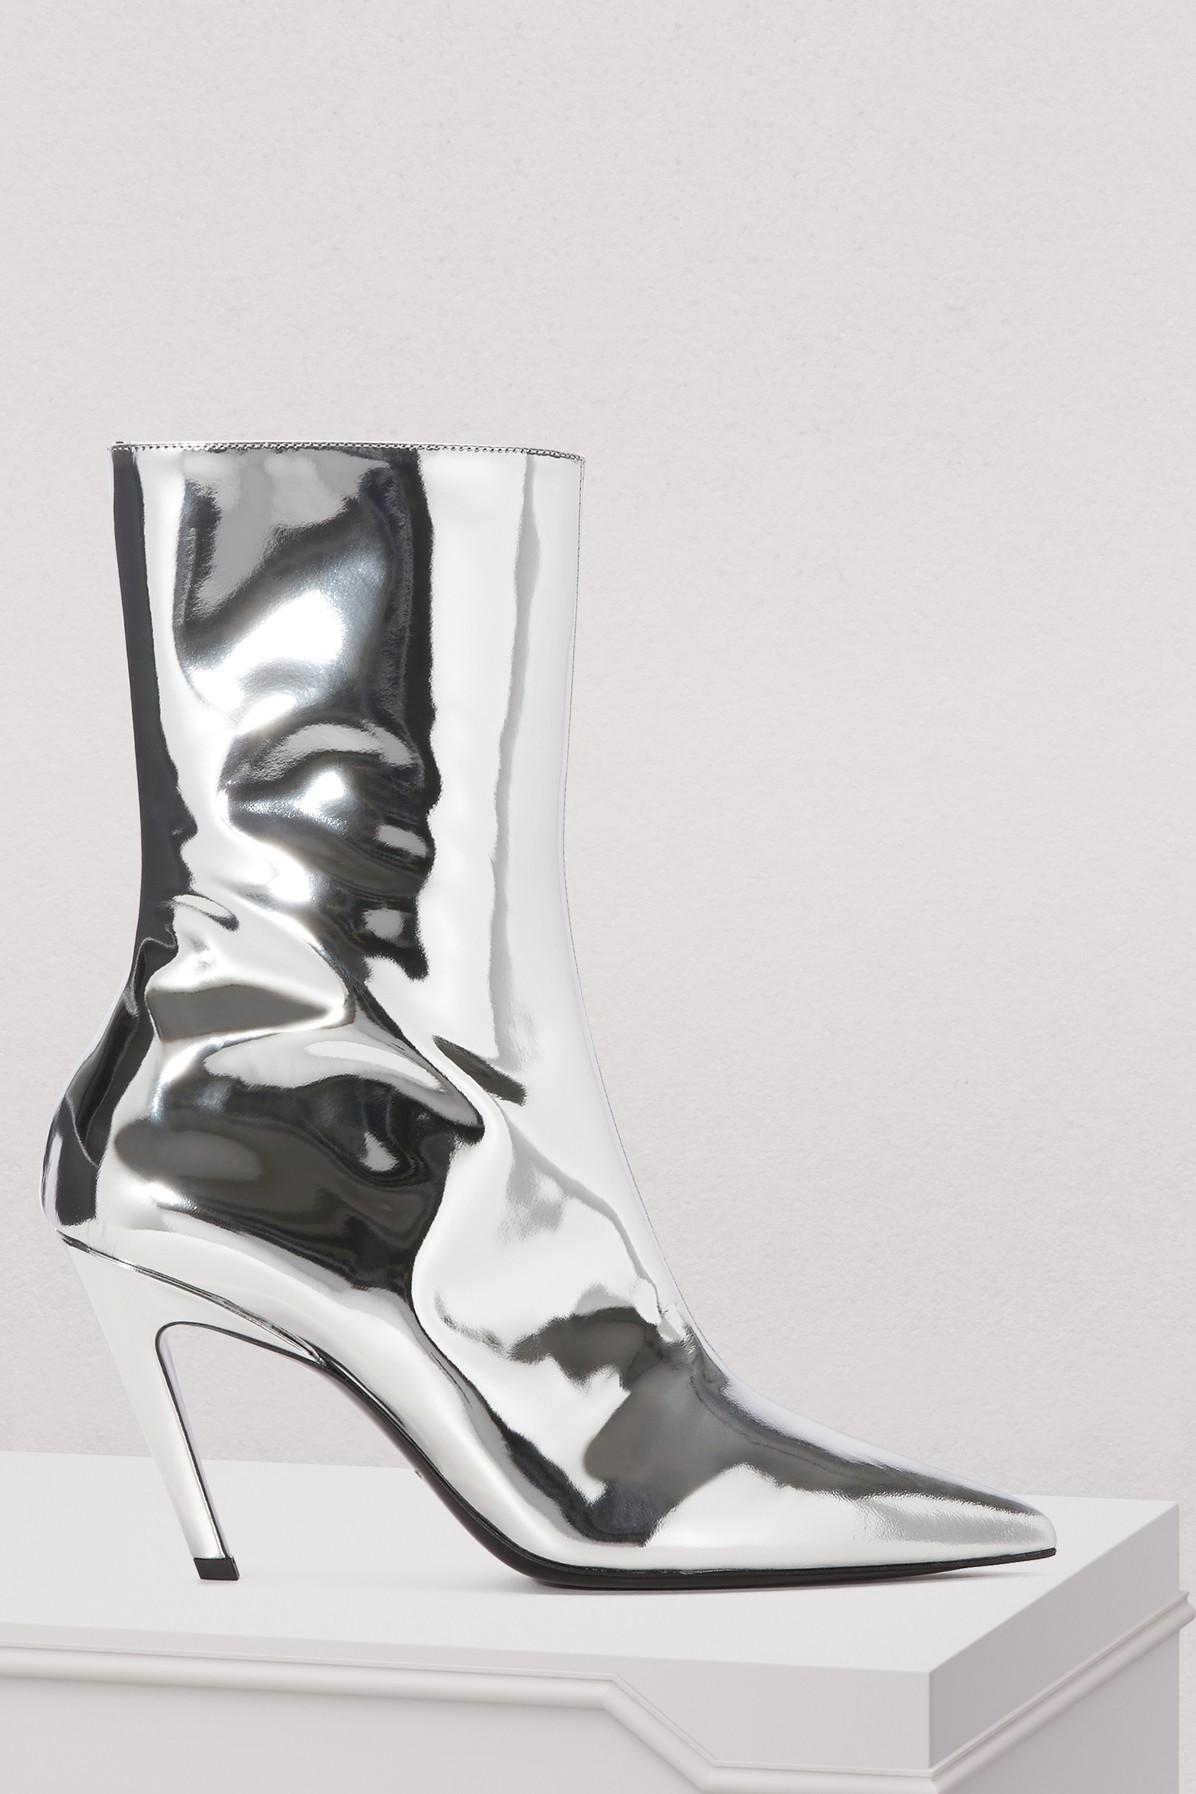 bbf7b2b07d9 Slash Silver Boots in Argent